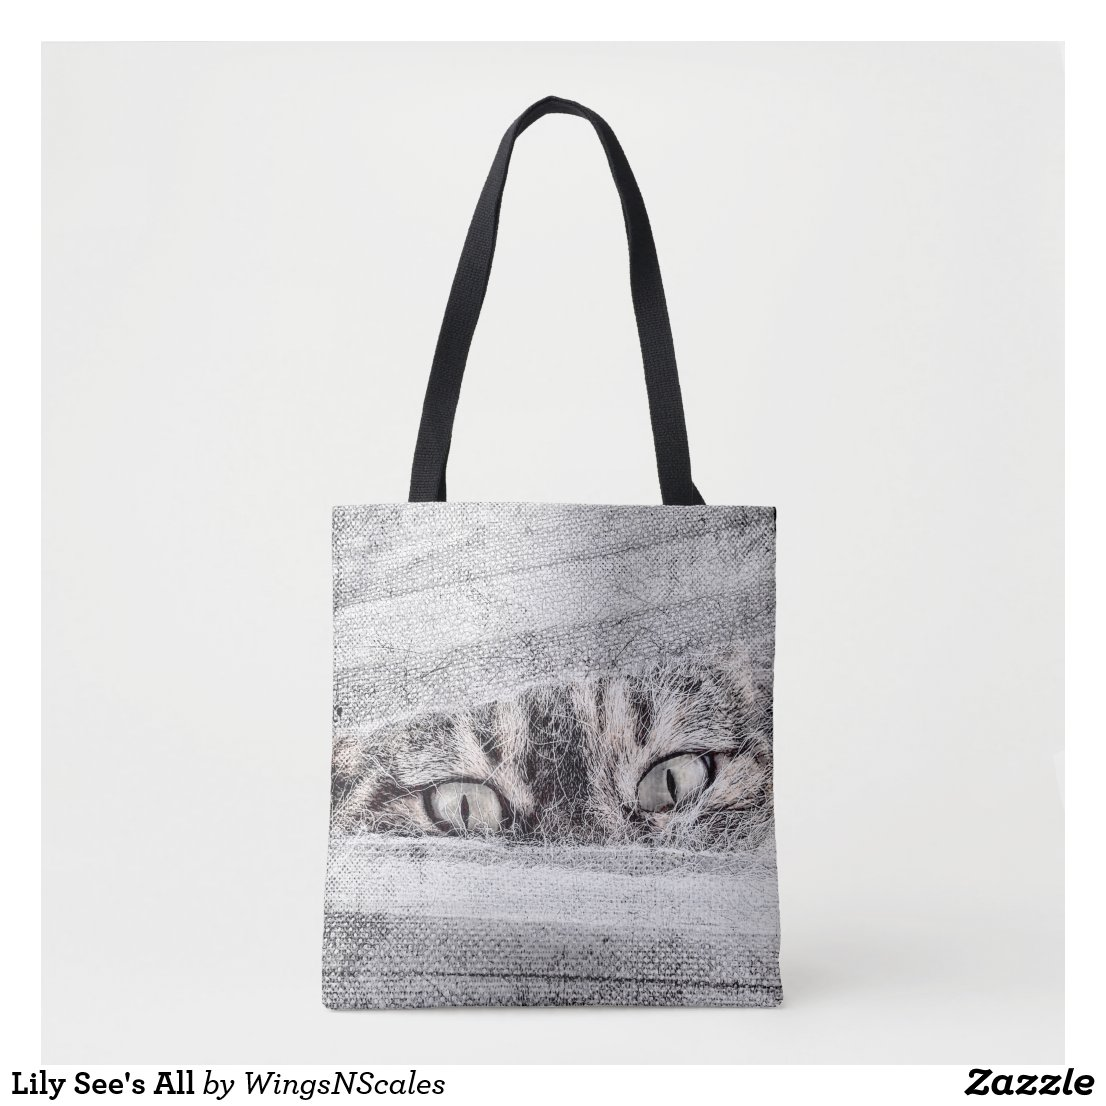 Lily See's All Tote Bag